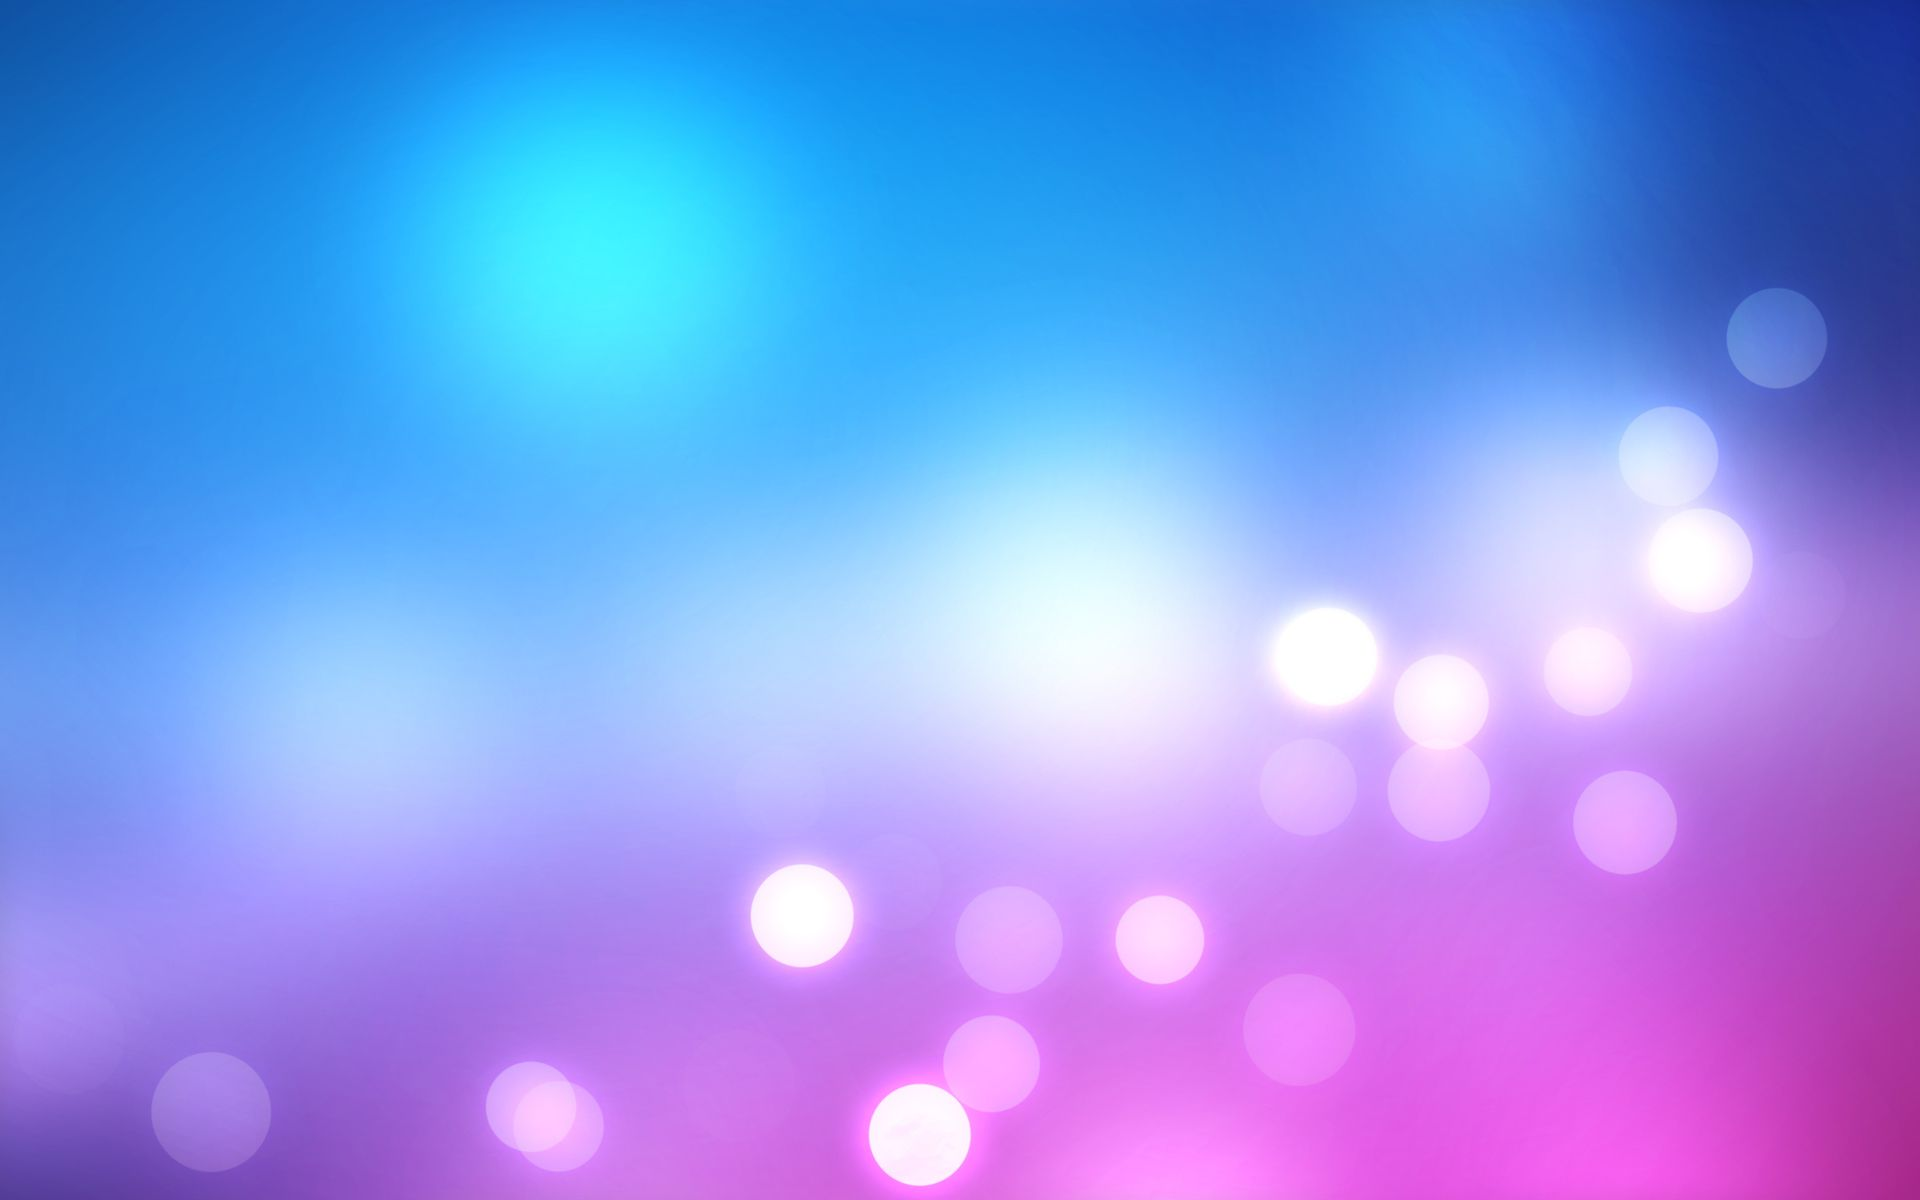 Purple And Blue Abstract Wallpaper Bokeh Wallpaper Beautiful Wallpaper Hd Abstract Wallpaper